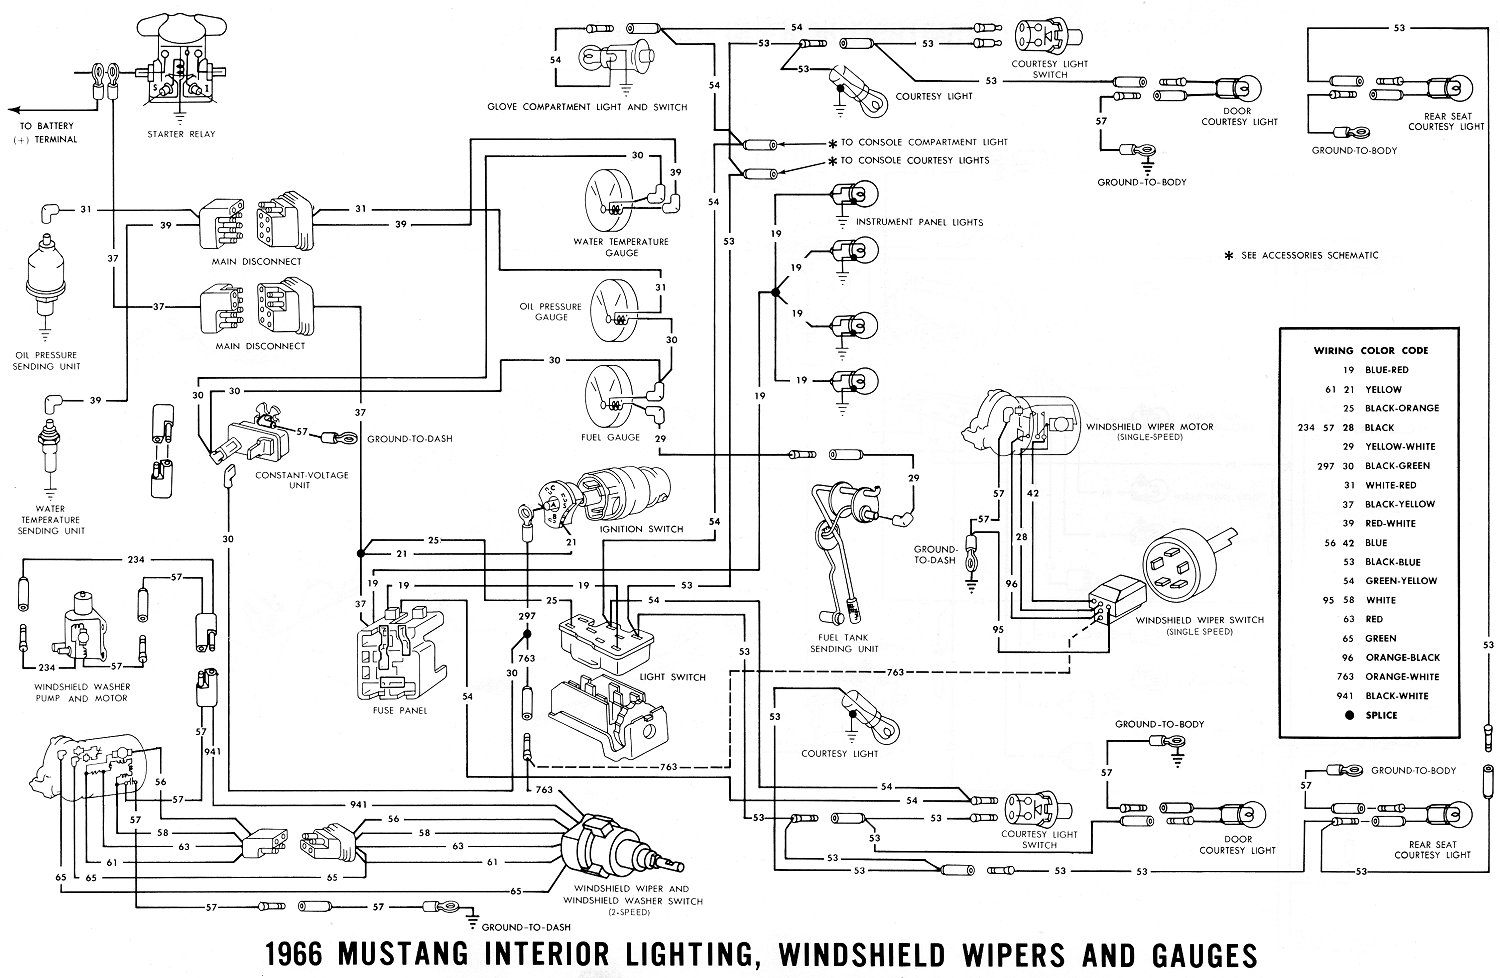 hight resolution of 1966 mustang lighting wiring diagram enthusiast wiring diagrams u2022 rh rasalibre co 1966 ford truck wiring